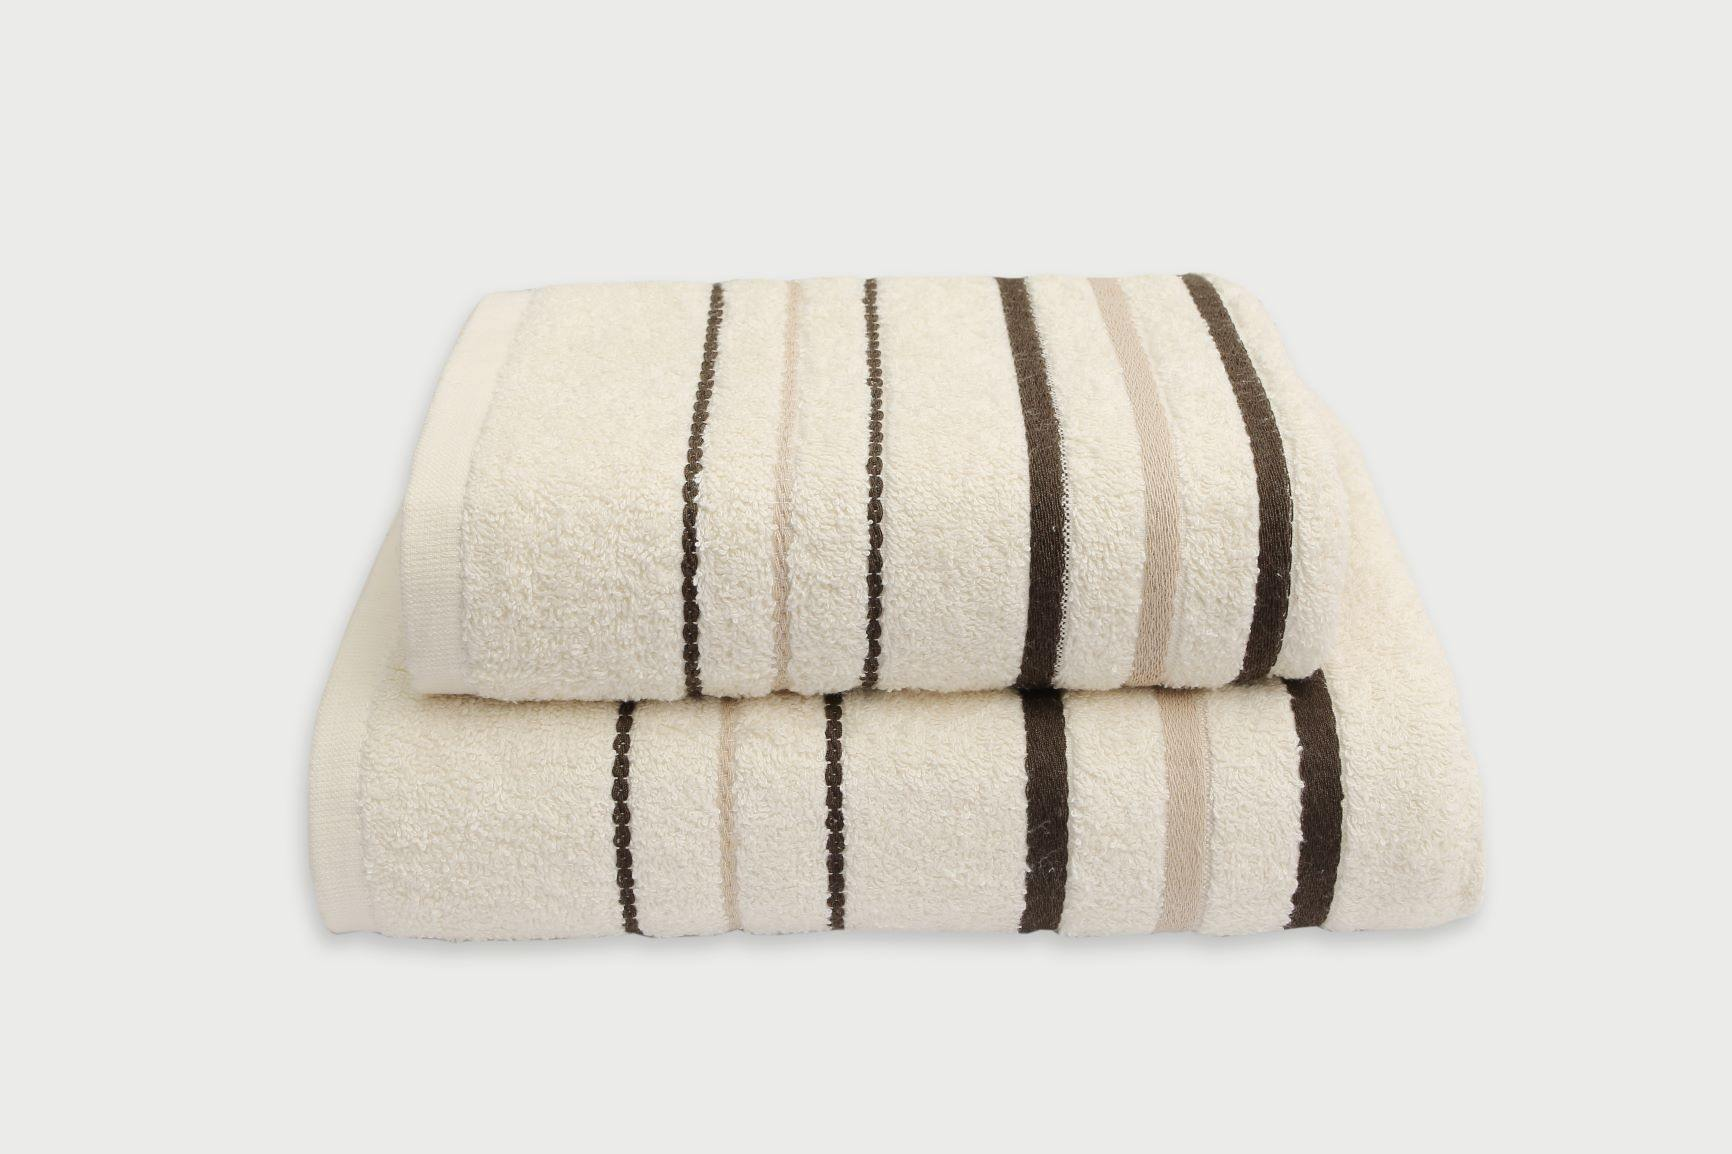 Seashell Soft Towel - Set of 2 - Daily Essentials